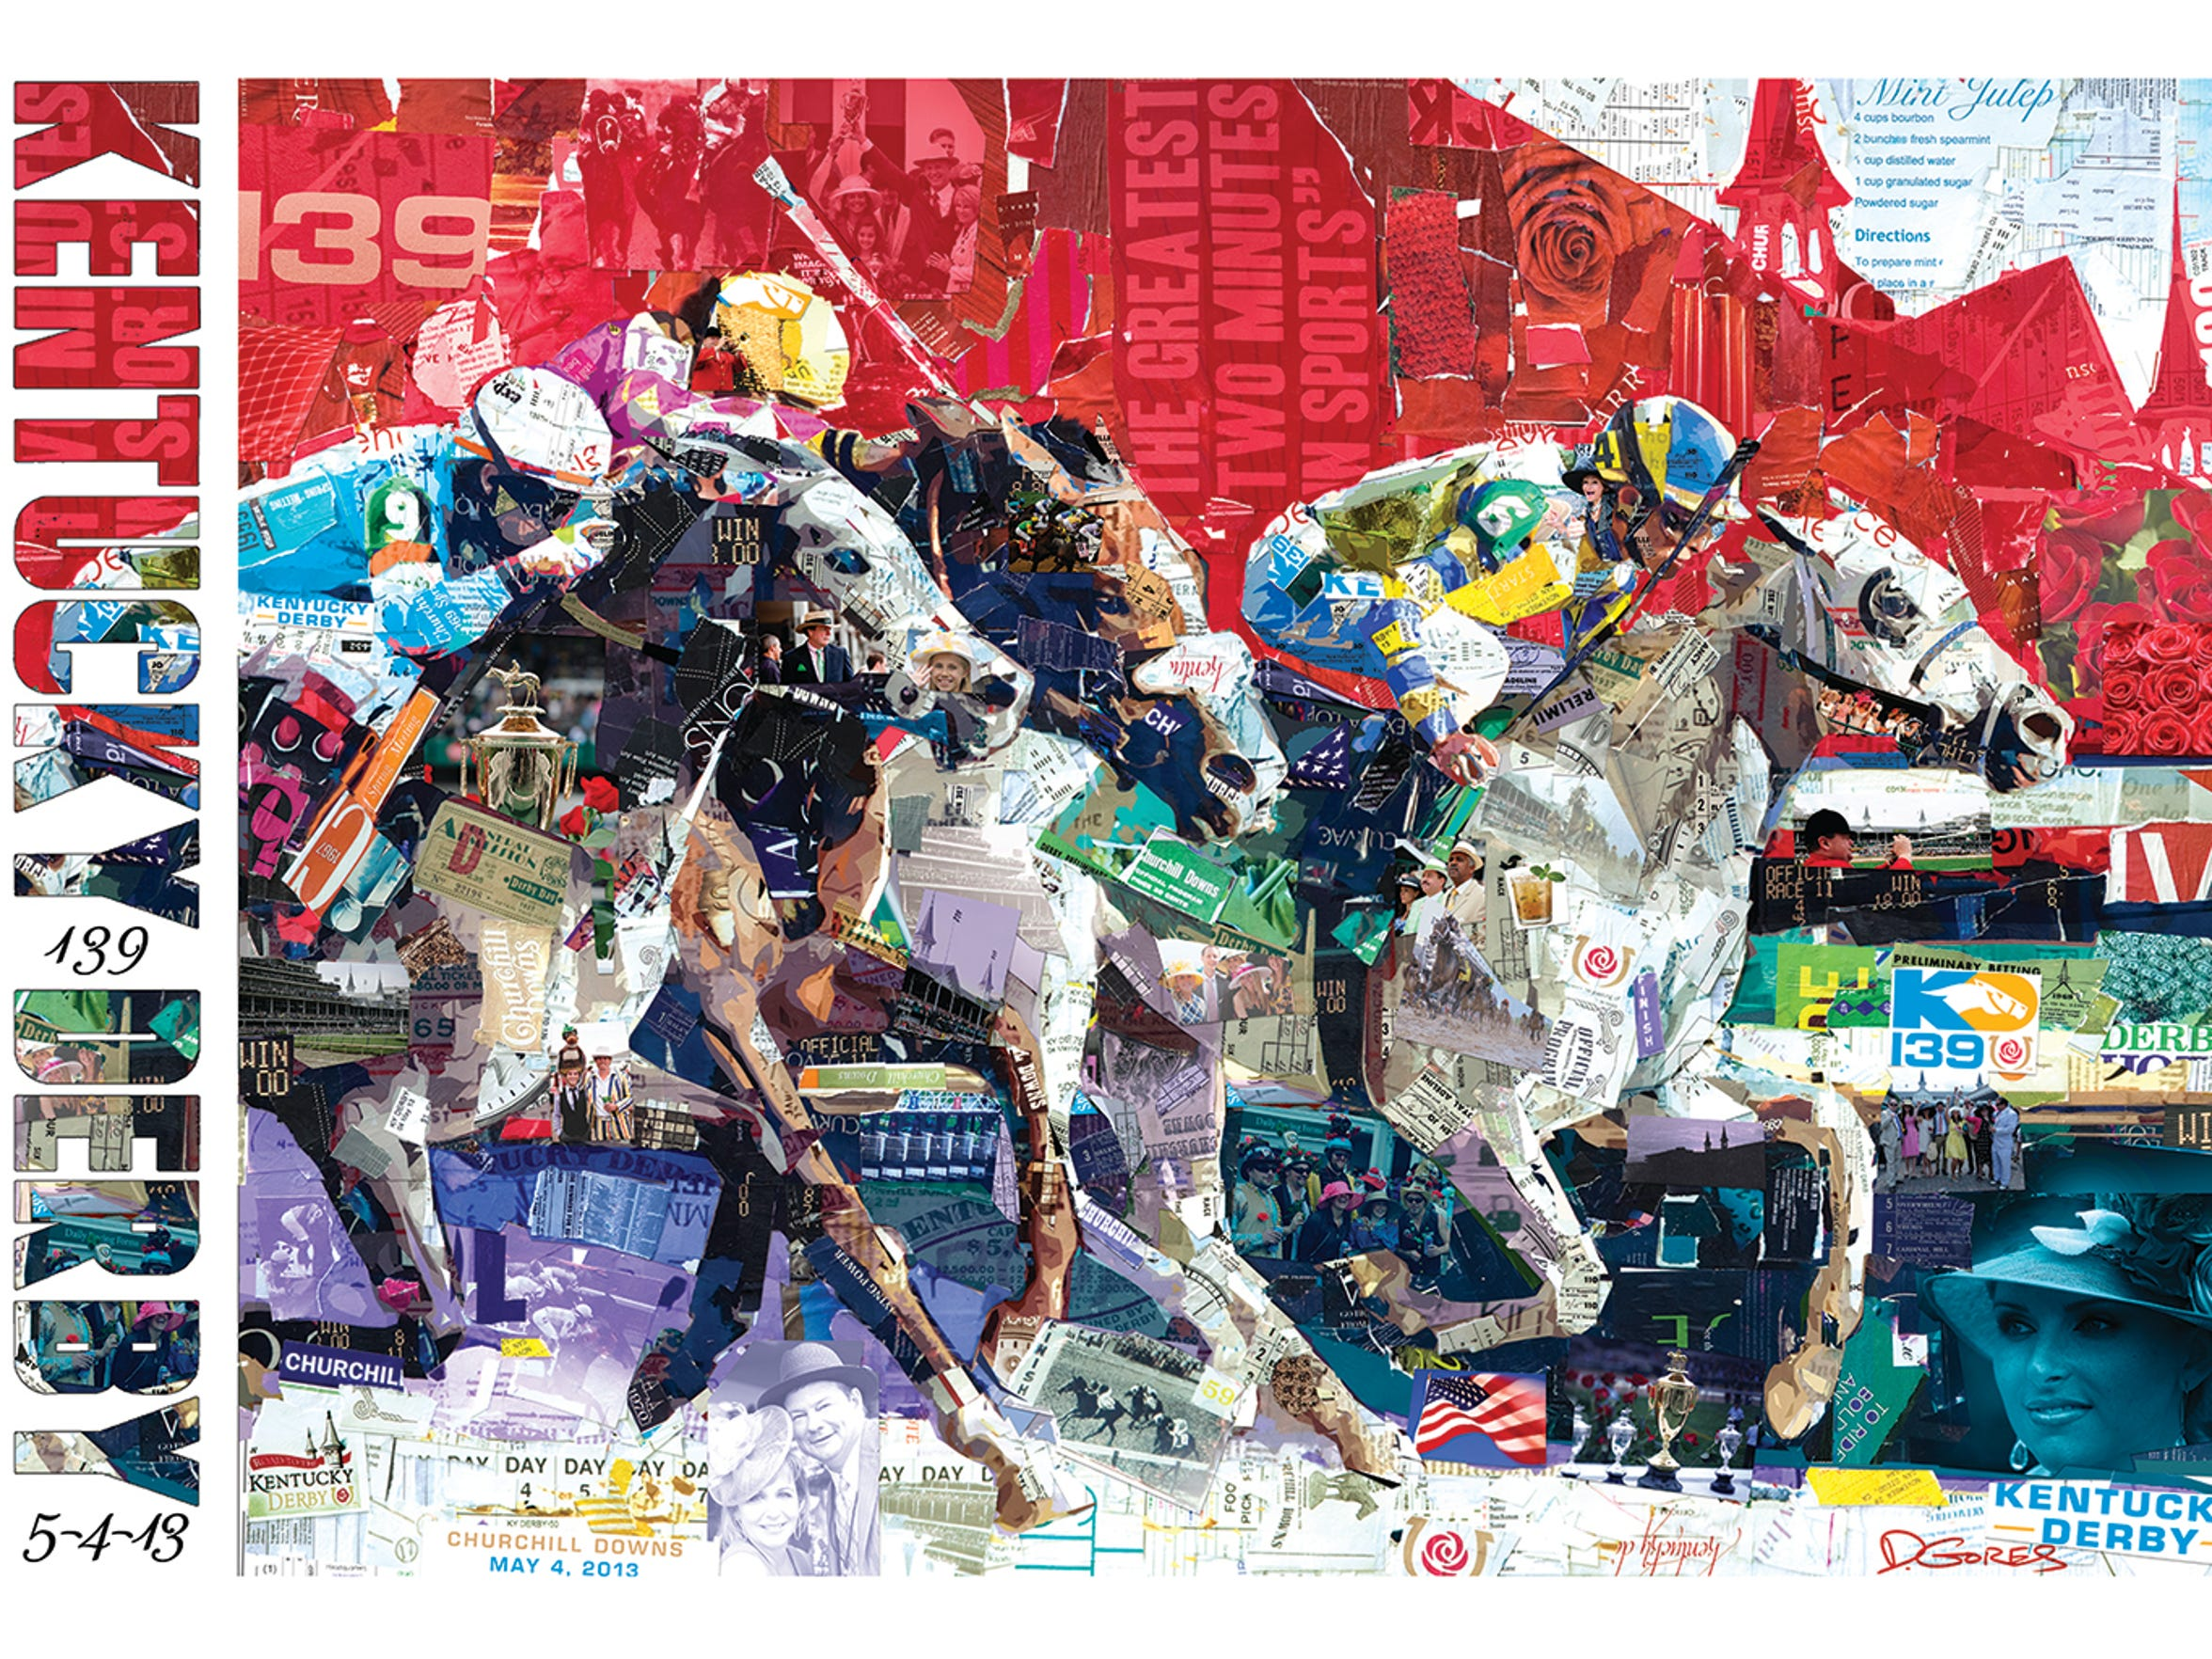 Derek Gores designed the commemorative poster created for the 2013 Kentucky Derby.